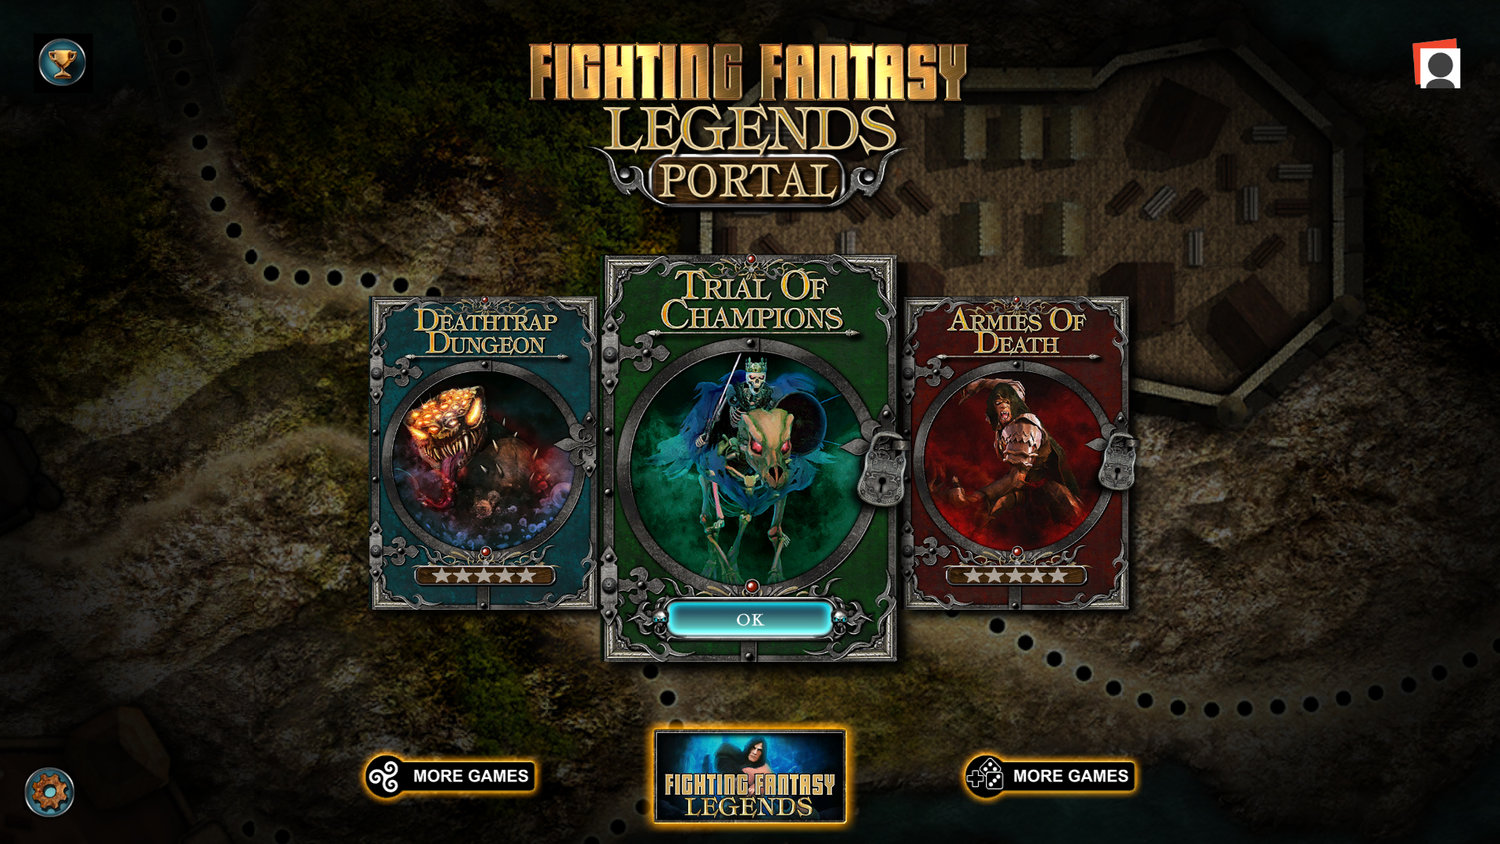 Live at 5pm UK time, TableTap takes on Fighting Fantasy Legends Portal on Twitch